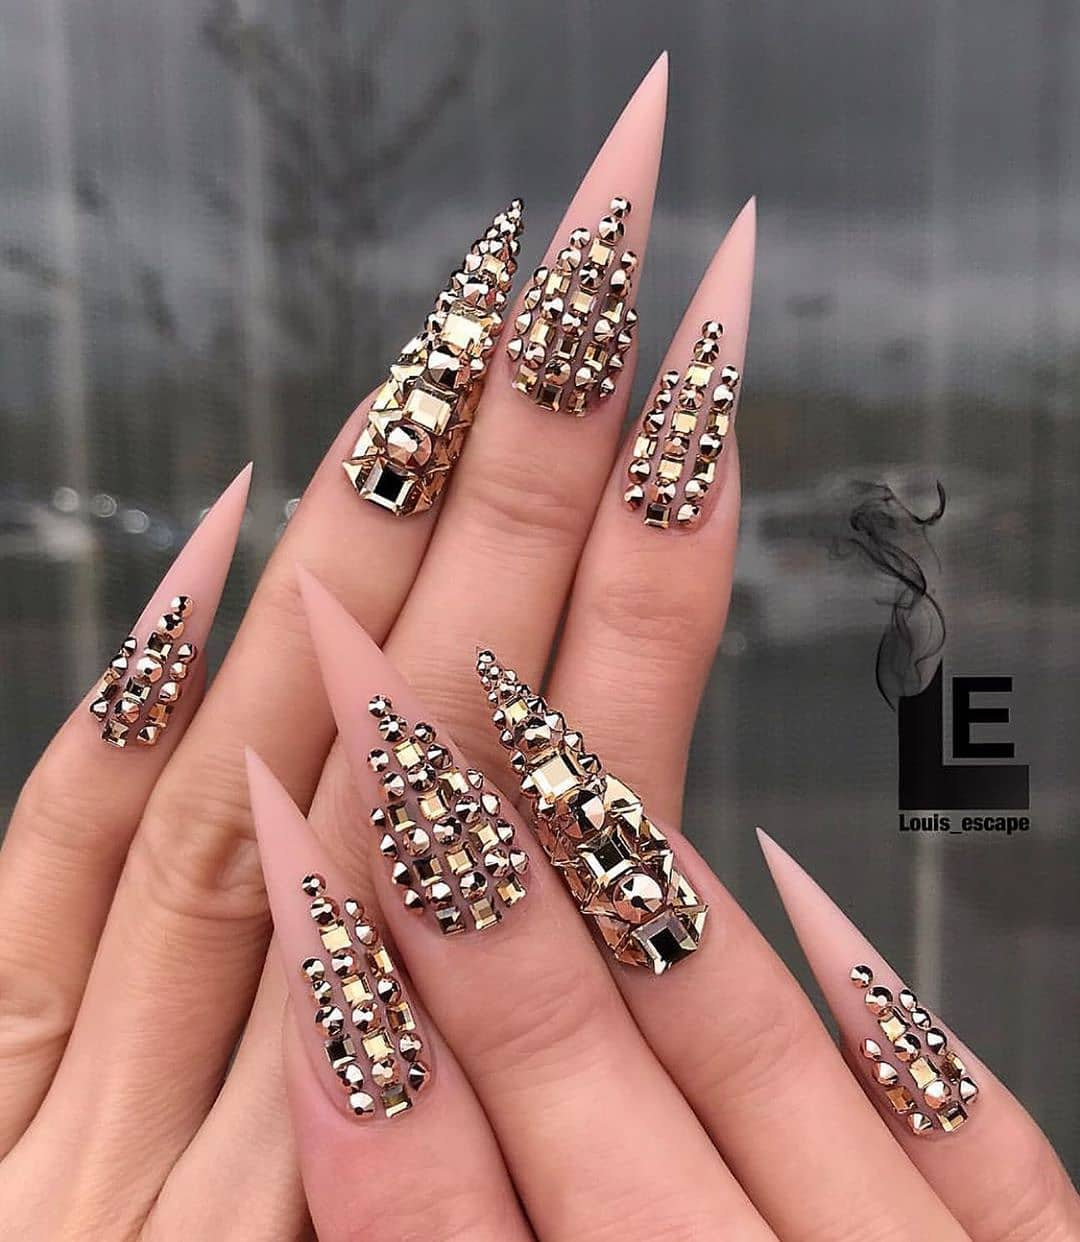 The Best Bling Online. Coffin Nail Art with Gold Rhinestones.